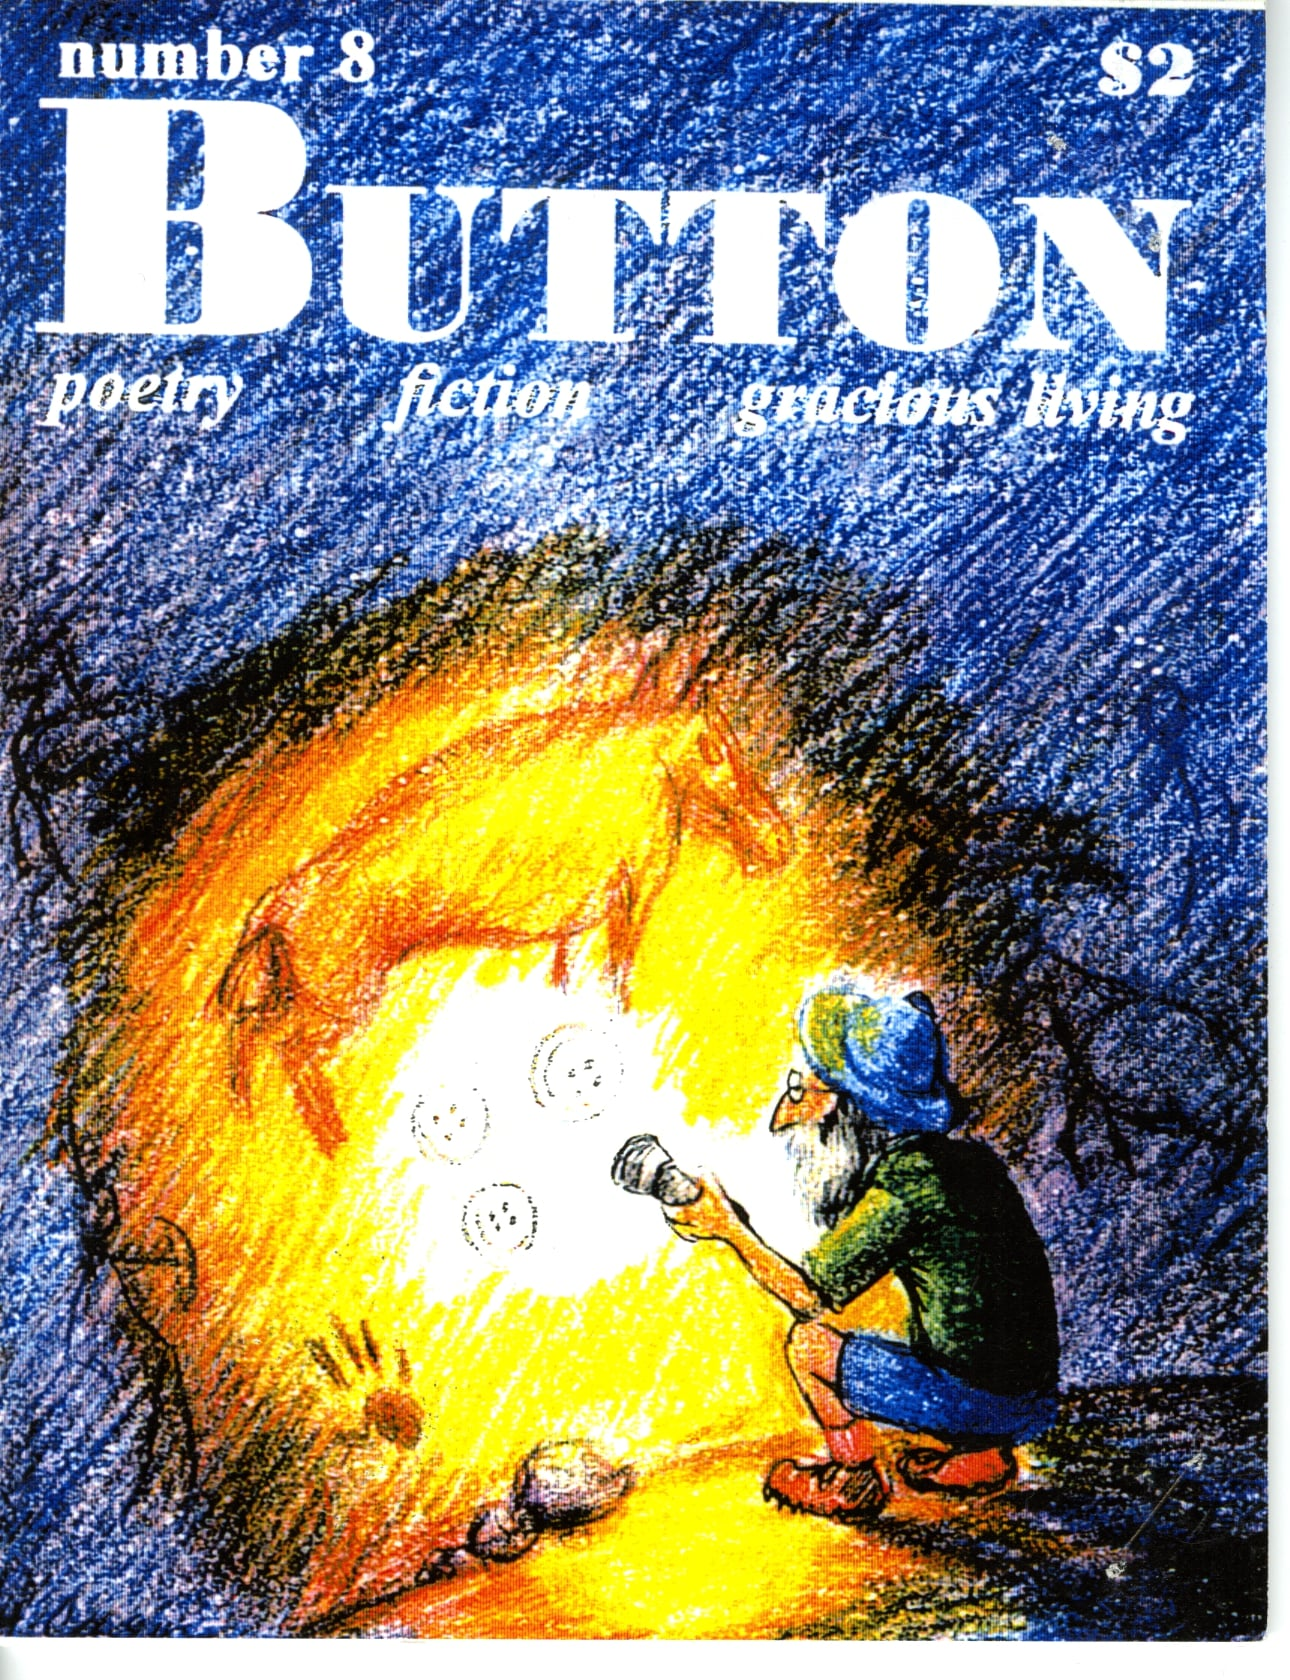 The cover of Button, issue #8, with a drawing of a cave painting, compared by the editor to a diary.